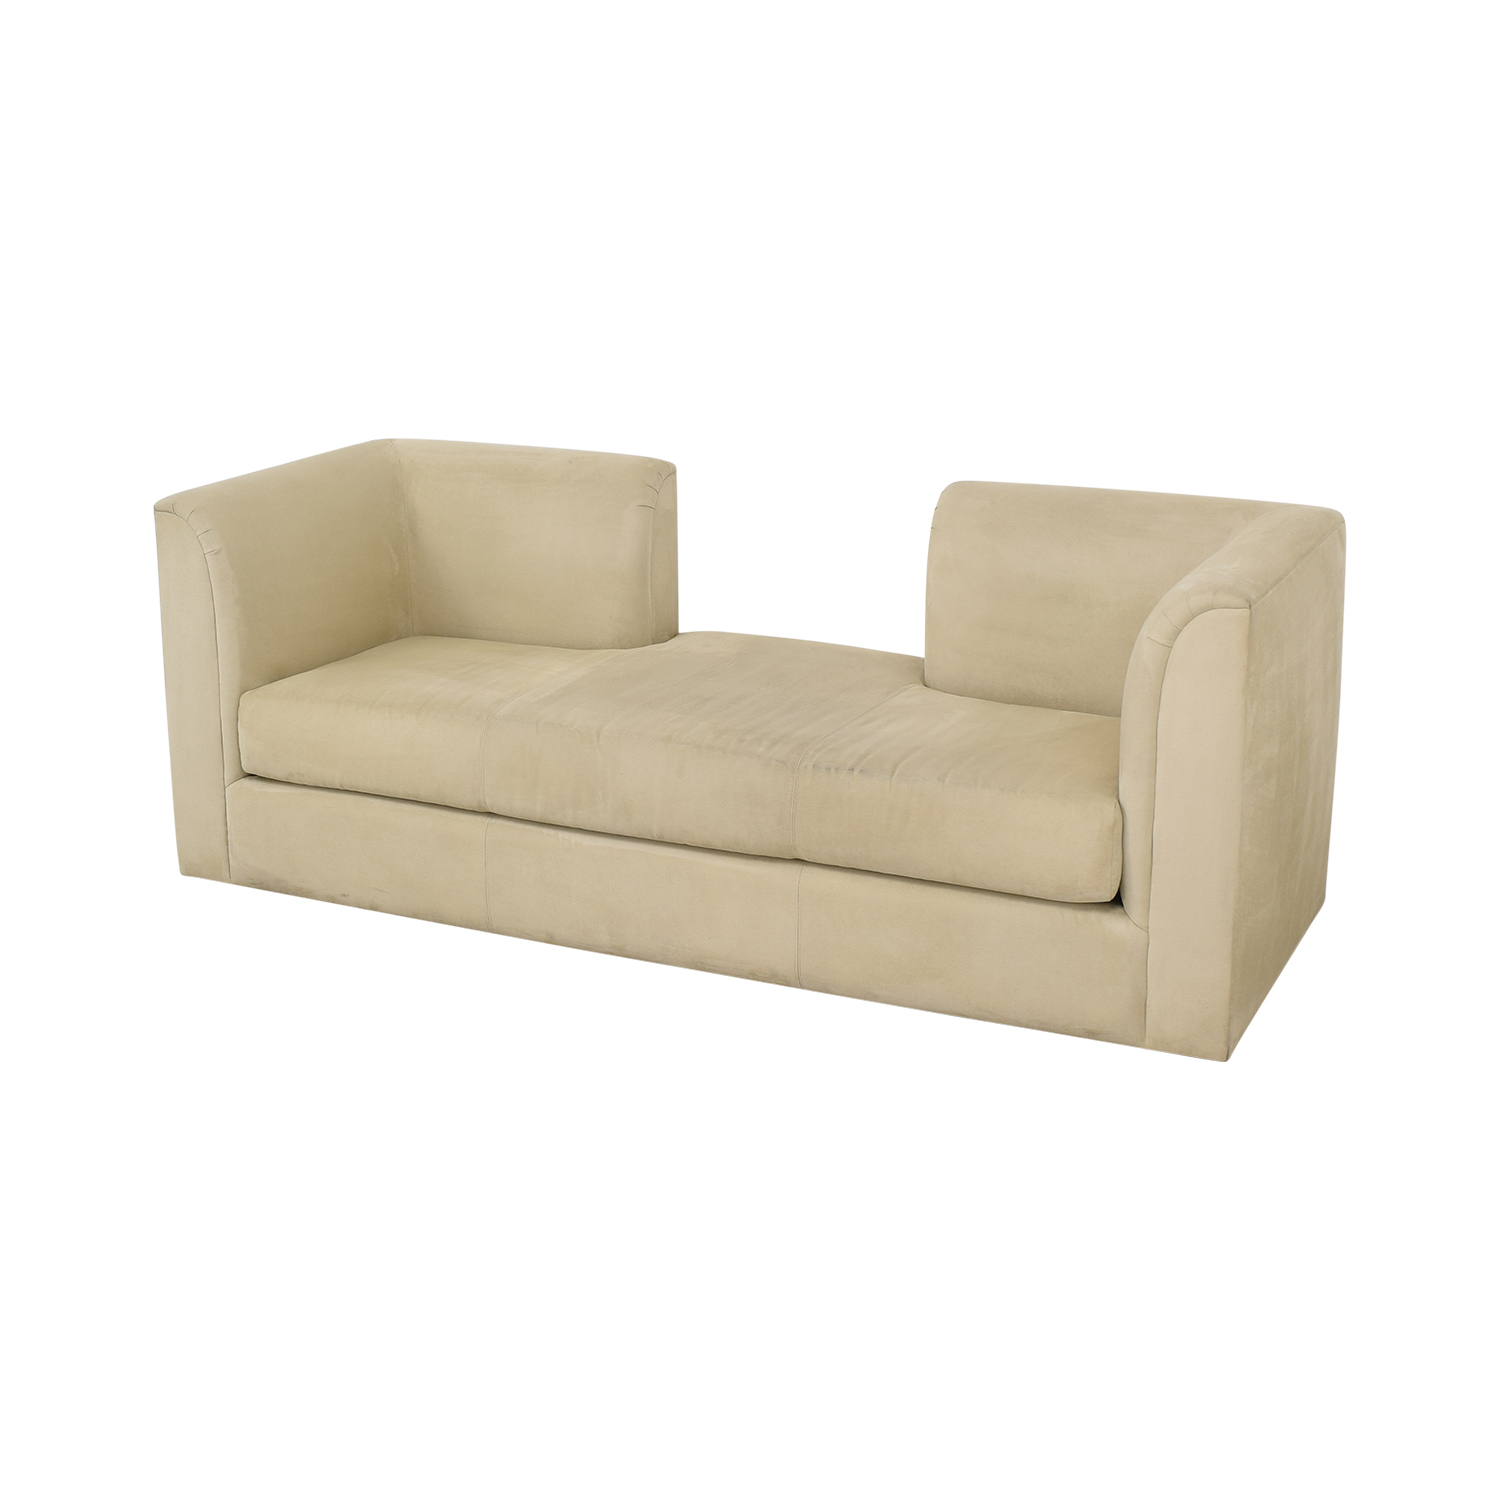 buy  Custom Single Cushion Sofa online